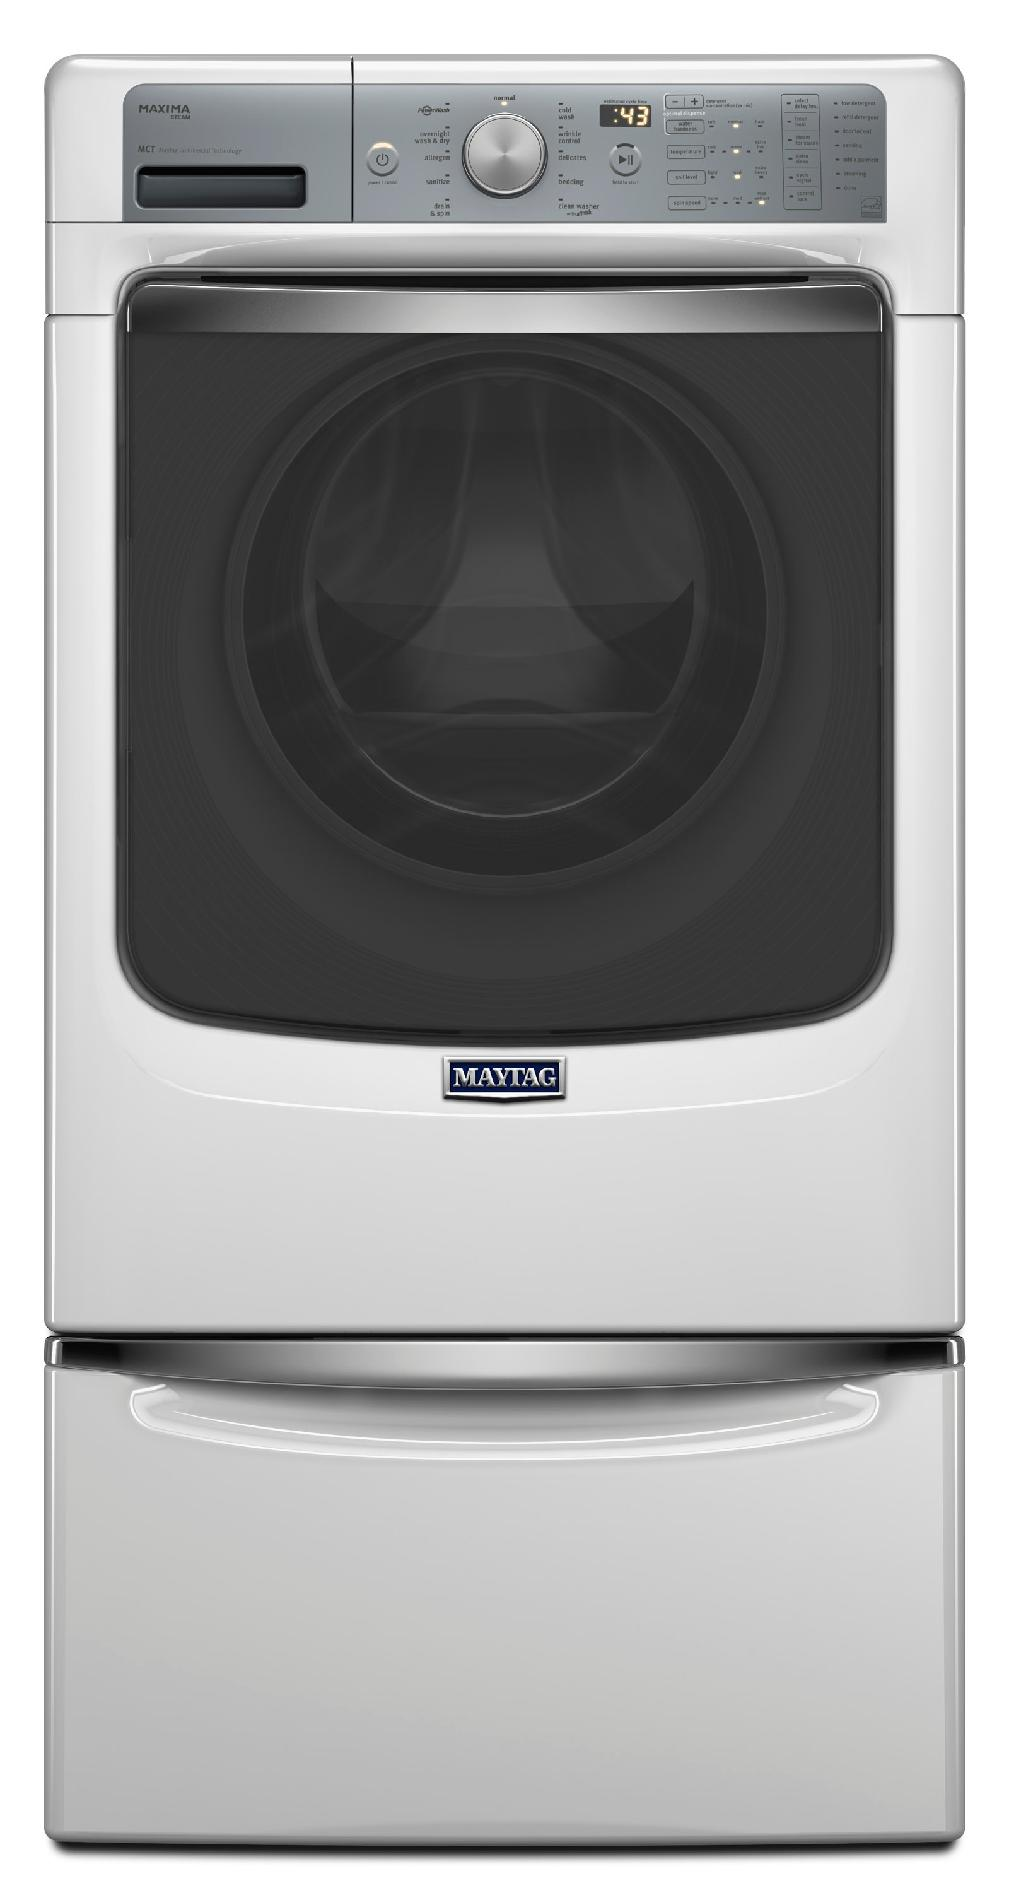 Maytag 4.5 cu. ft. Maxima® Front-Load Washer w/ Wash and Dry Cycle - White